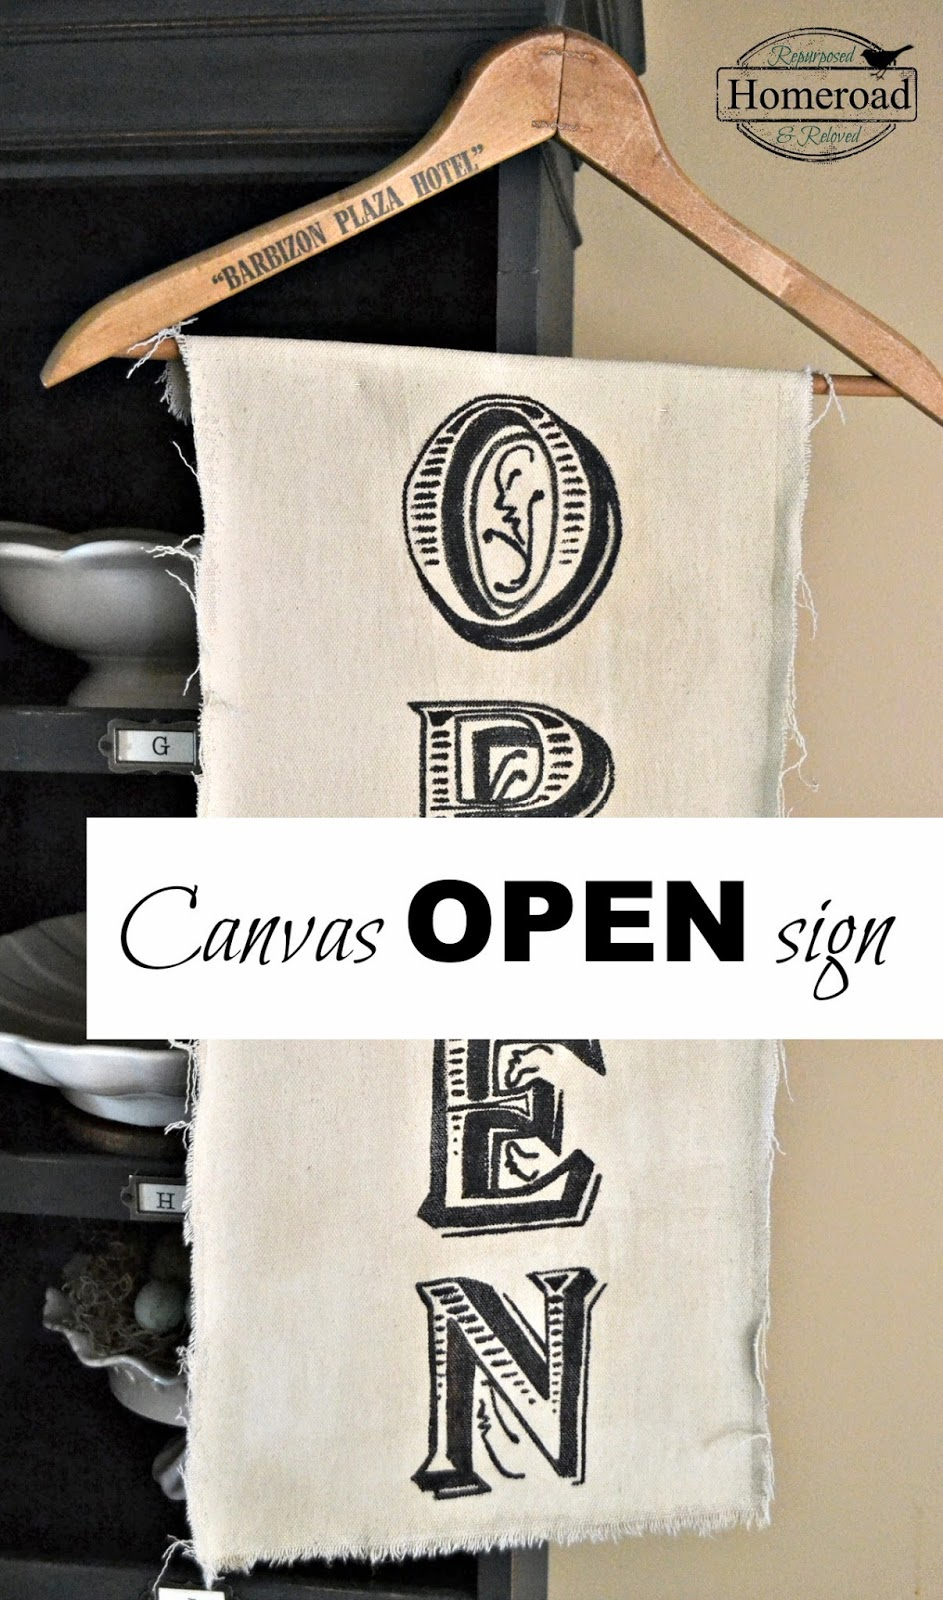 canvas-OPEN-sign www.homeroad.net